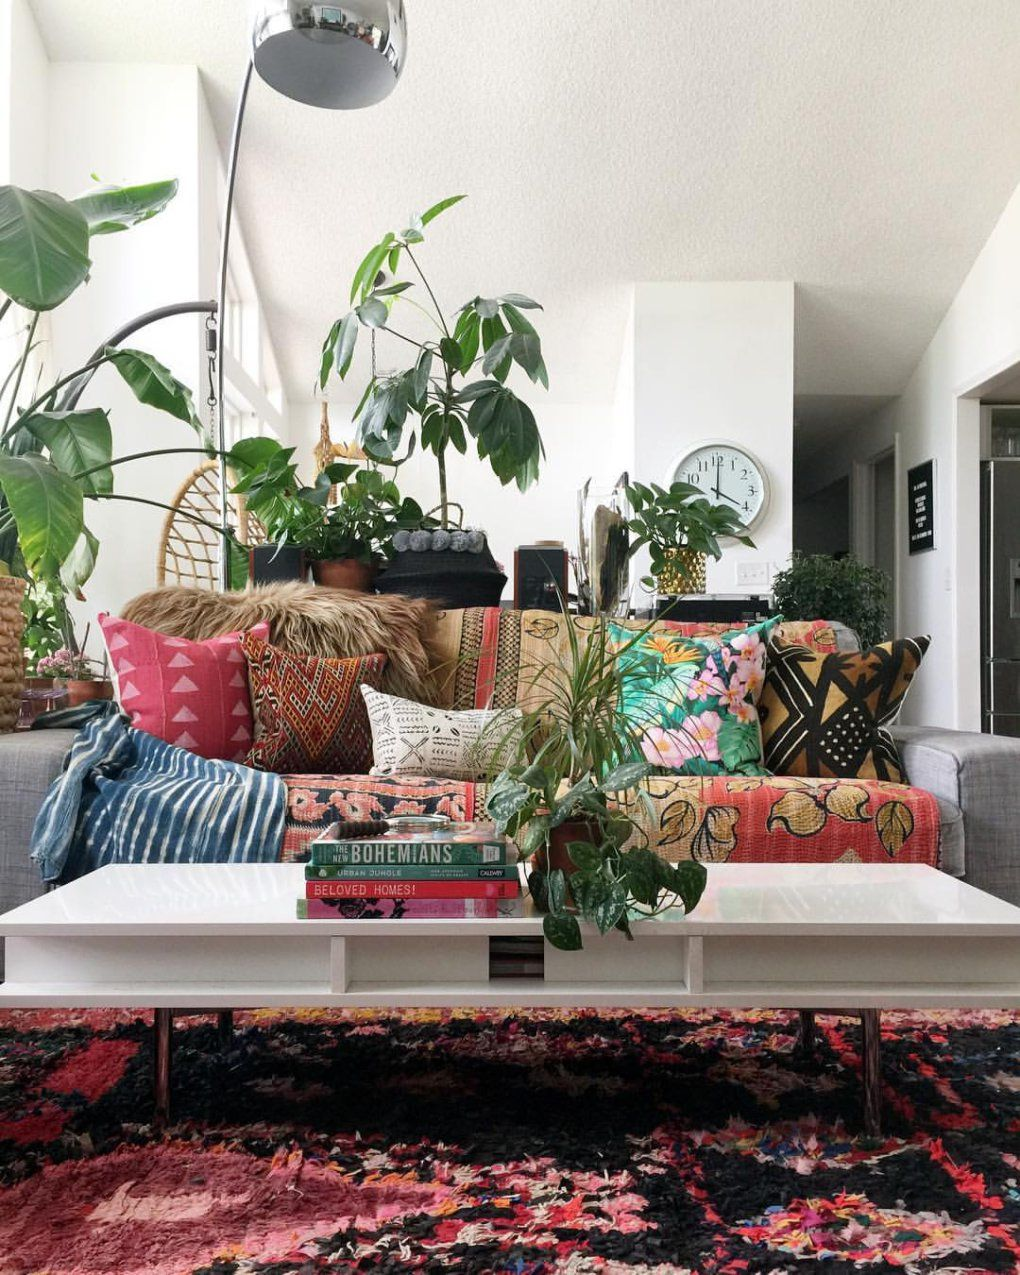 Mixing Vintage With A Touch Of Hippie To Create An Inspiring Modern Boho Home Selection Global Goods Local Furniture And Much More